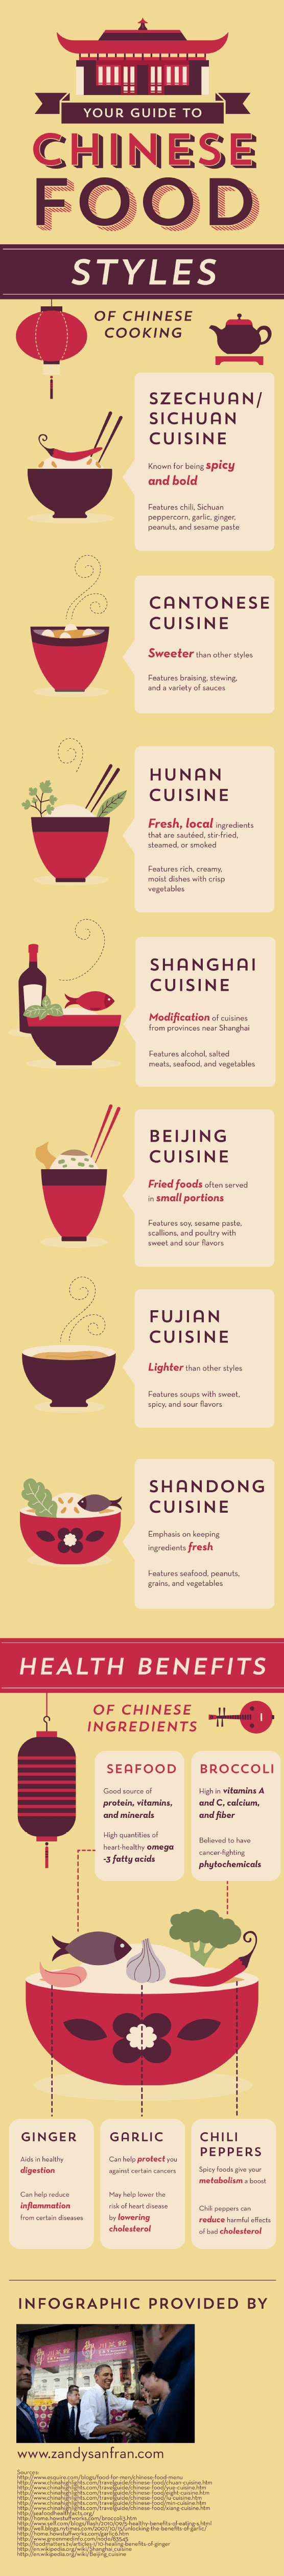 your-guide-to-chinese-food_520d6c61d0720.png